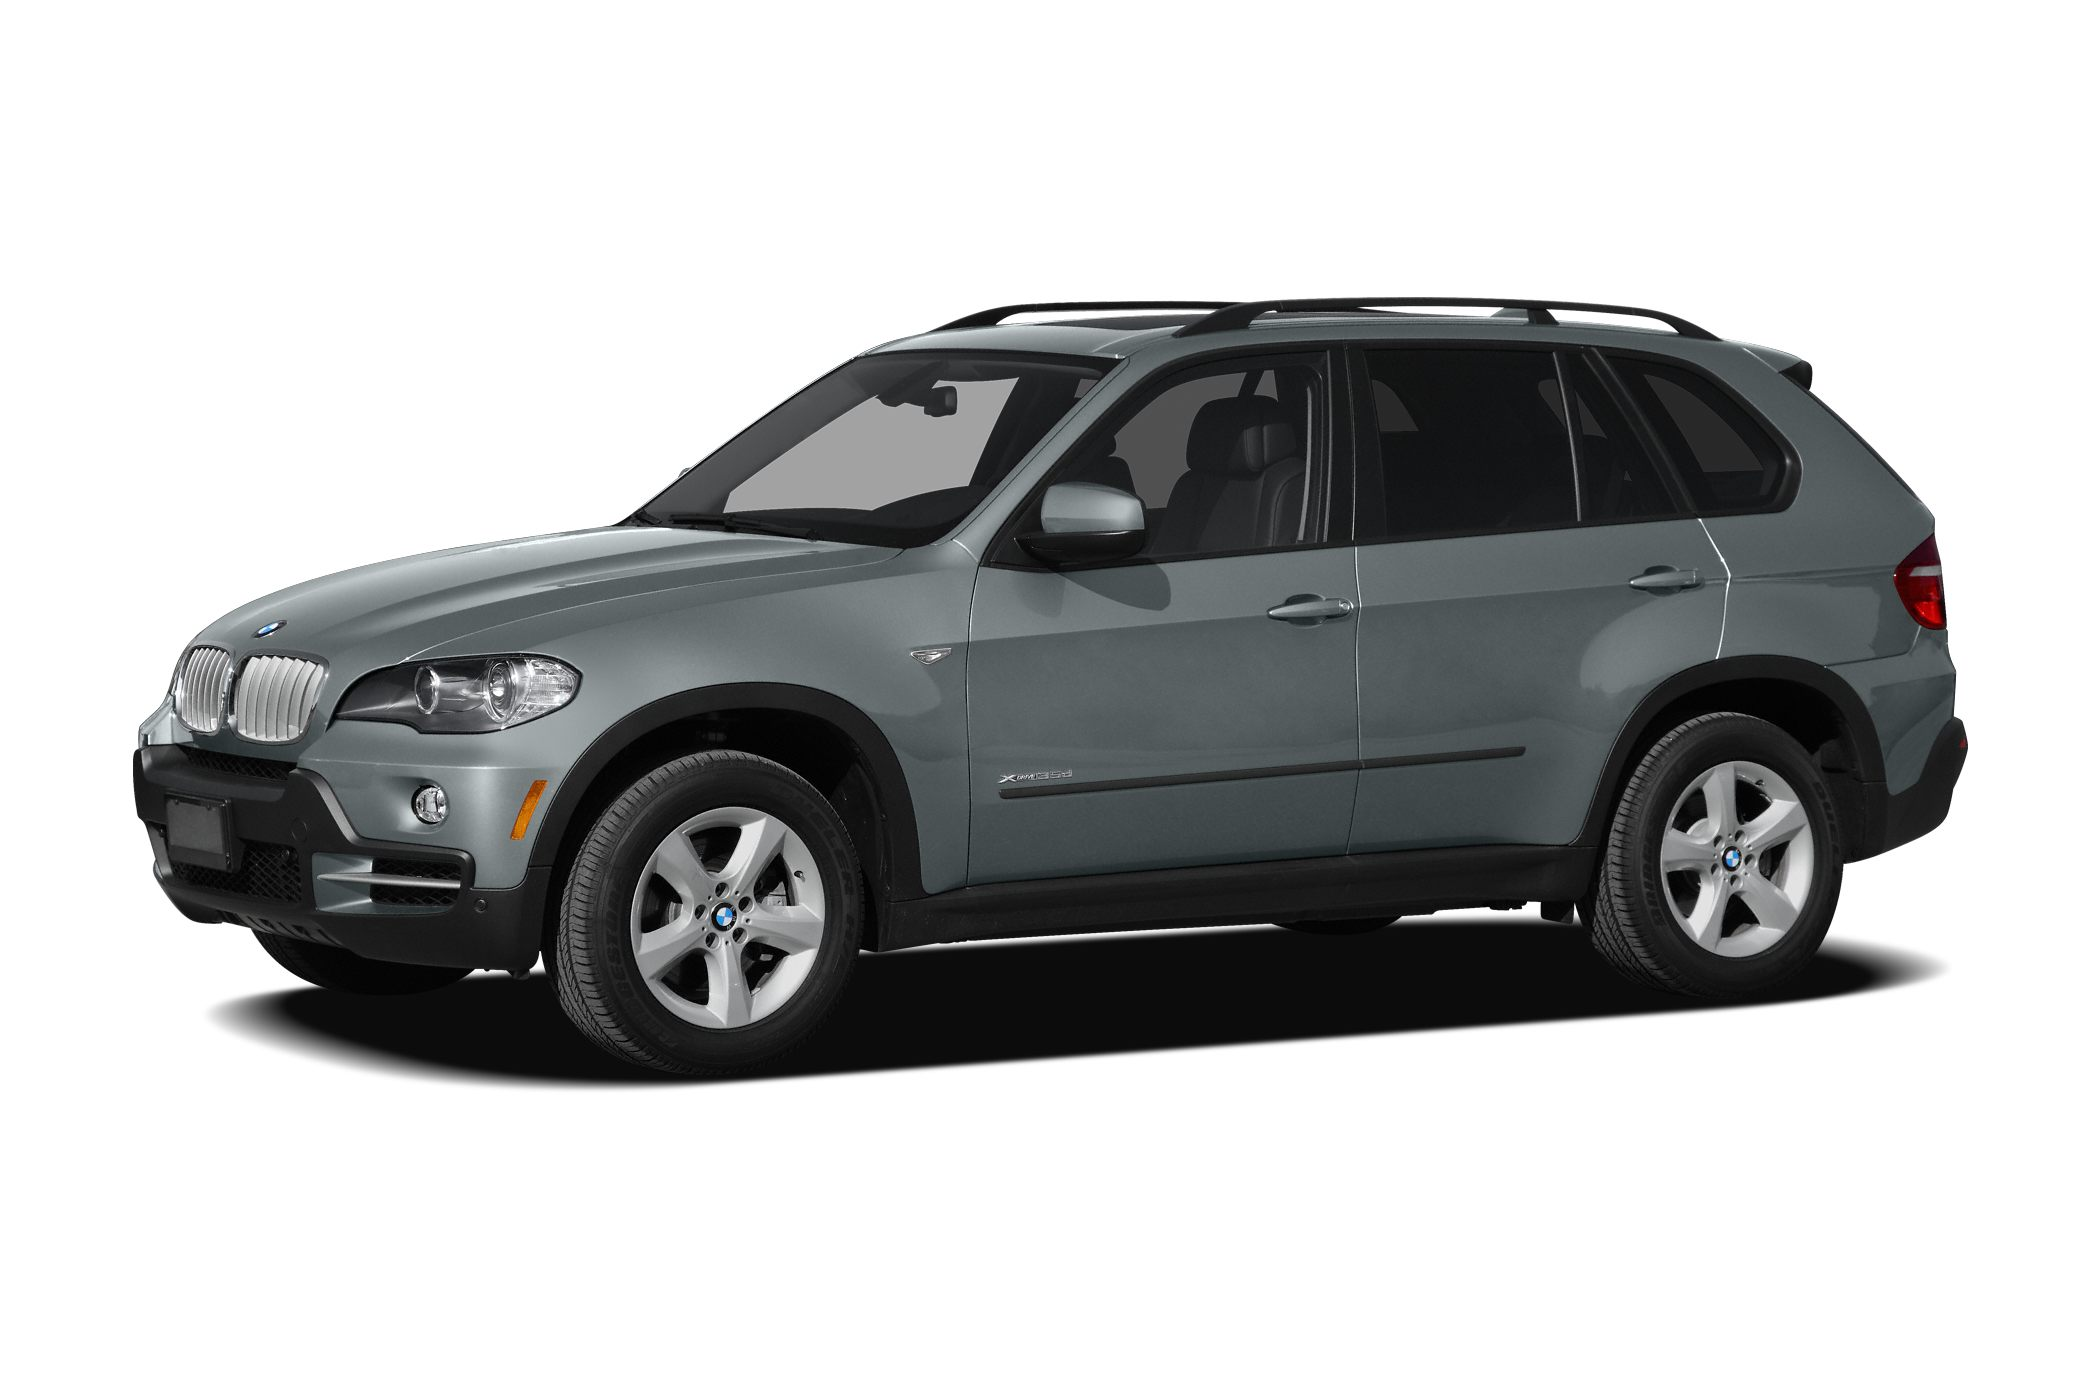 2010 BMW X5 XDrive30i SUV for sale in Douglasville for $19,985 with 97,818 miles.